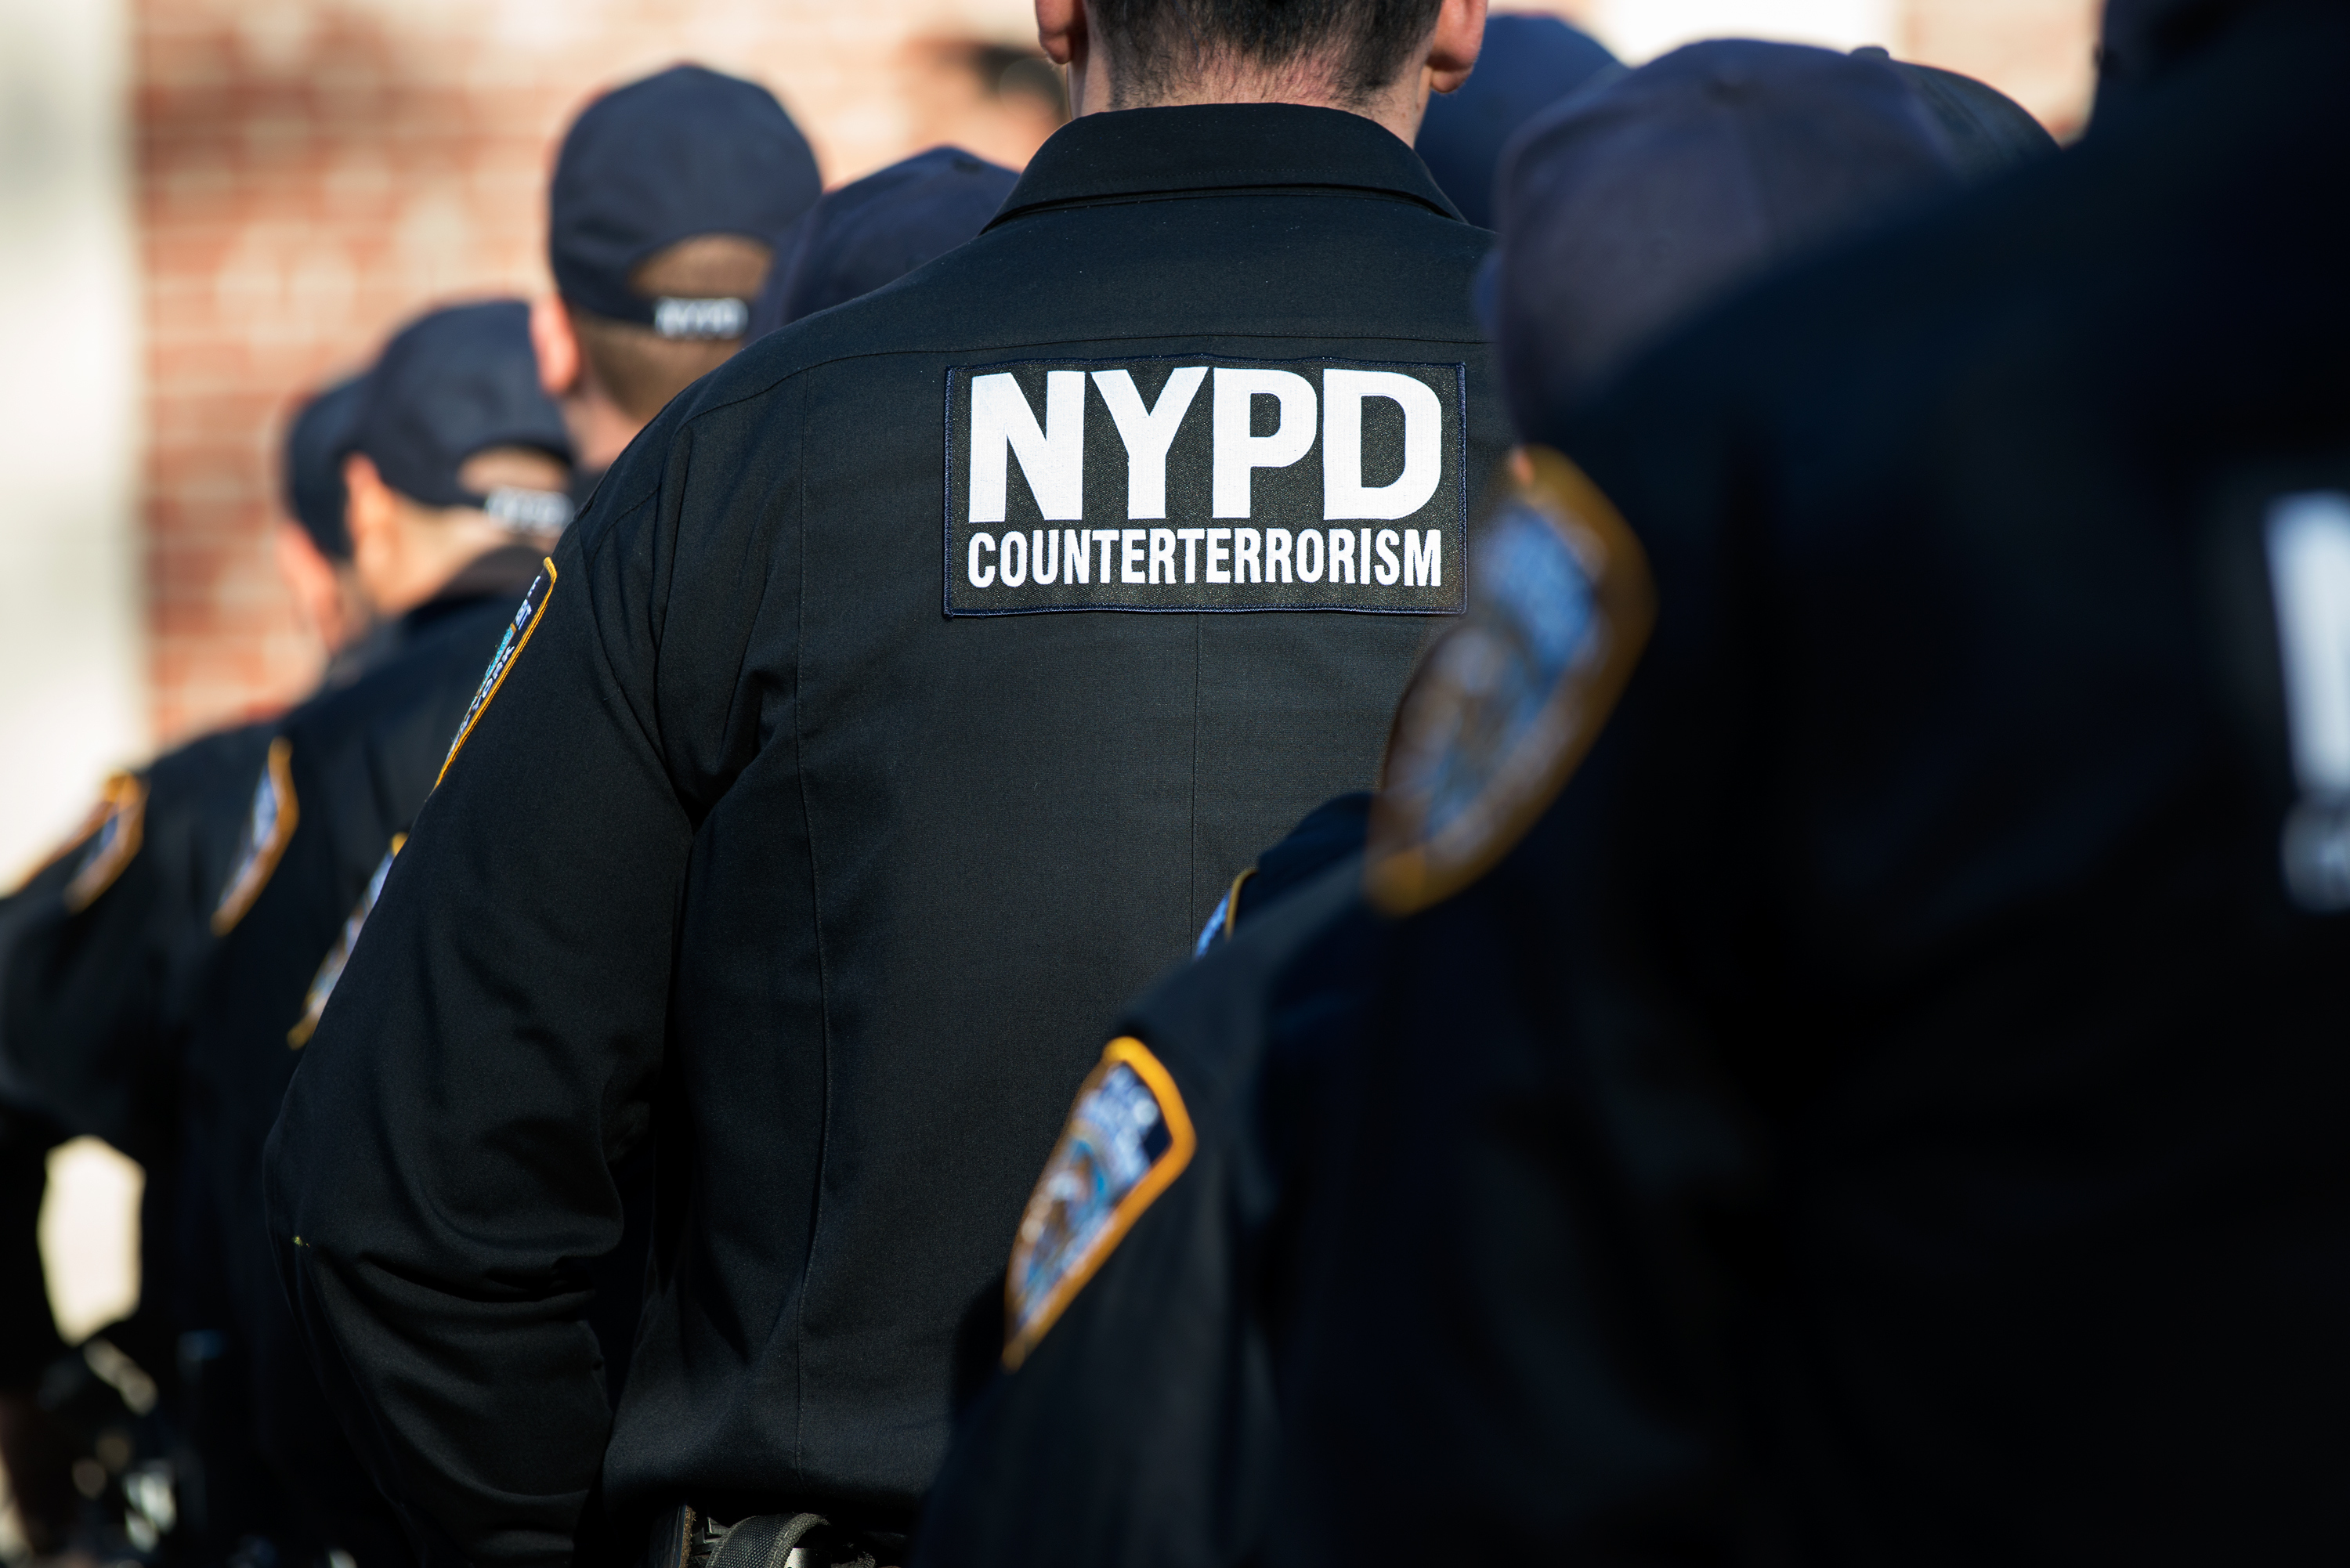 NYC Announces New NYPD Critical Response Command Of Counter-Terrorism Bureau